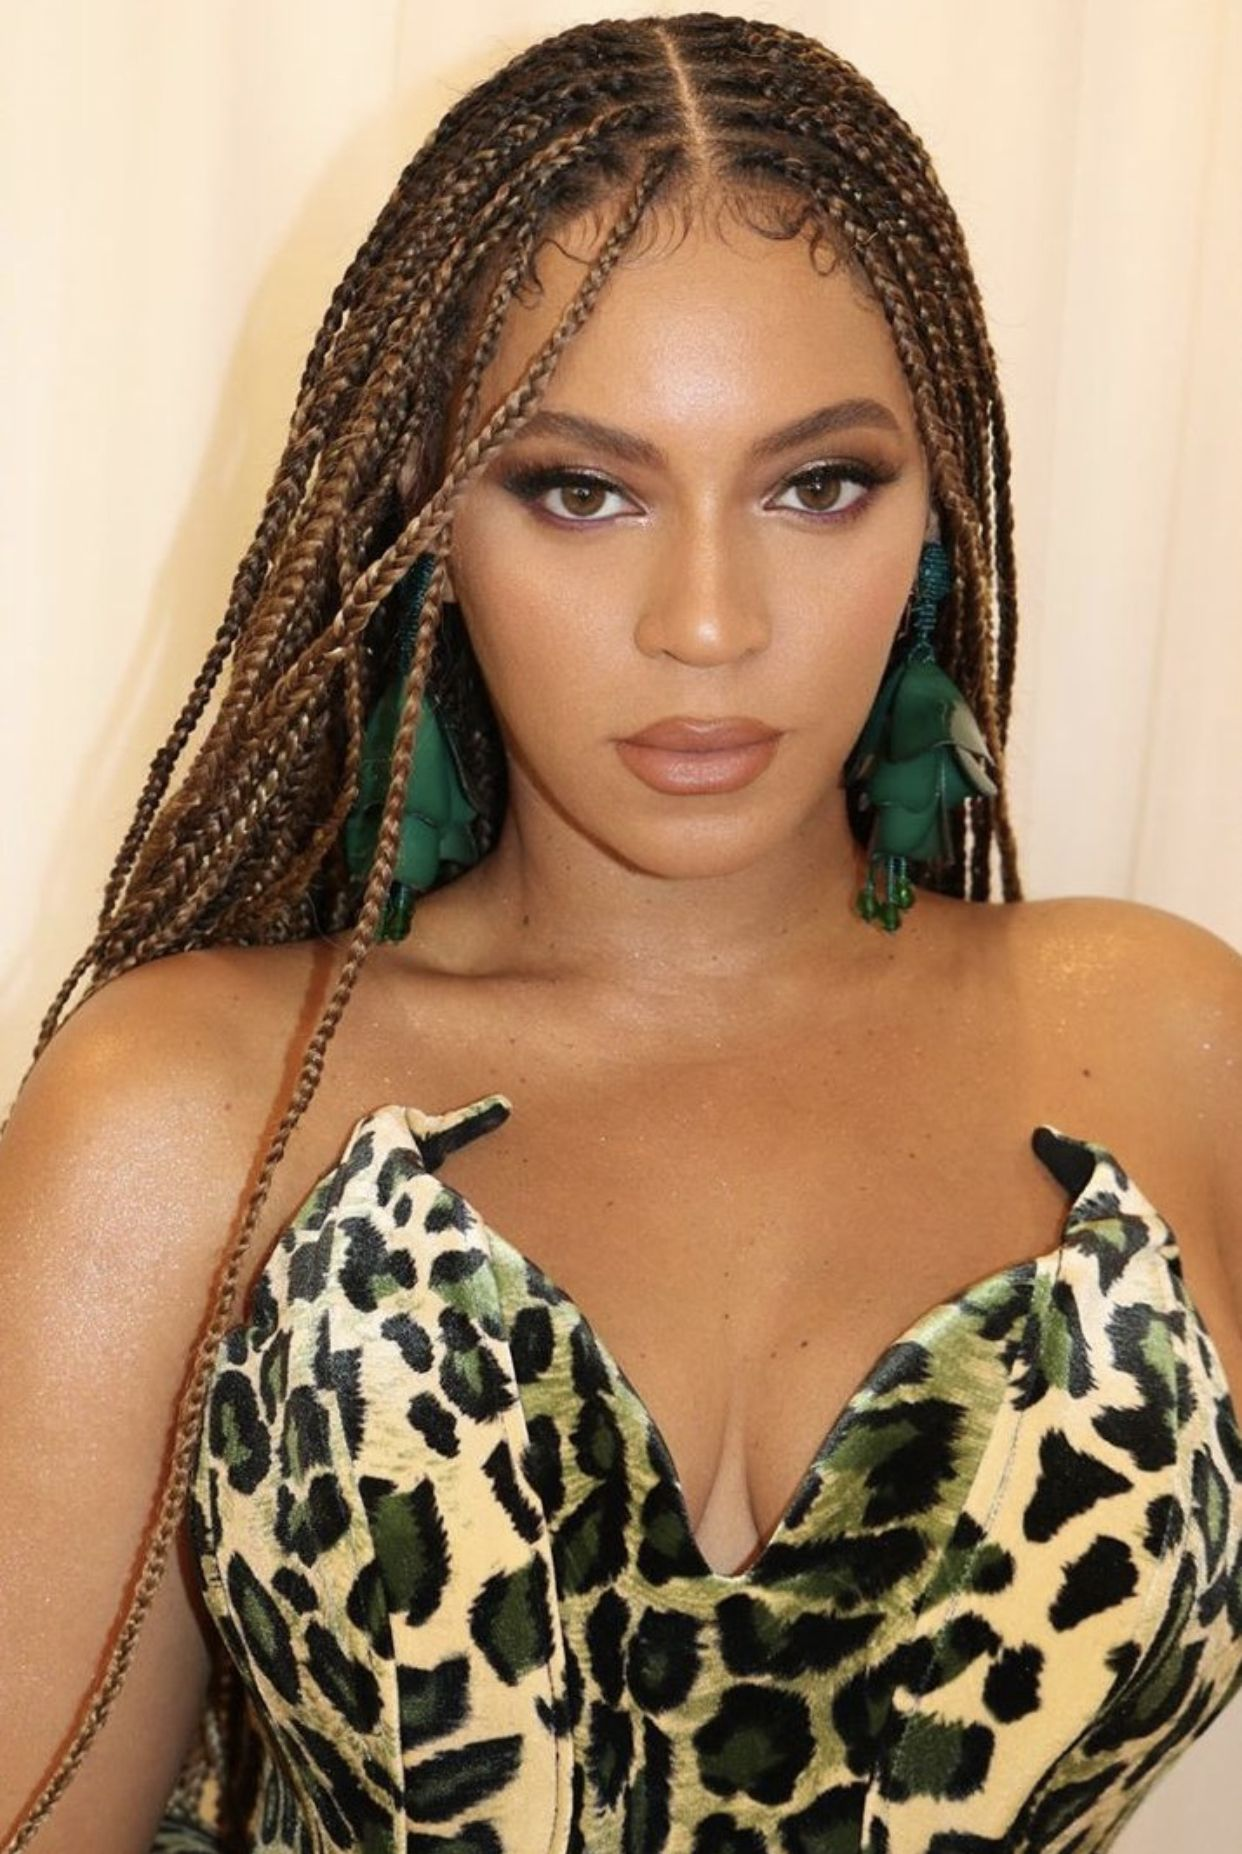 Beyonce At Lorraine Schwartz Holiday Party In 2020 Beyonce Hair Beyonce Braids Hair Styles